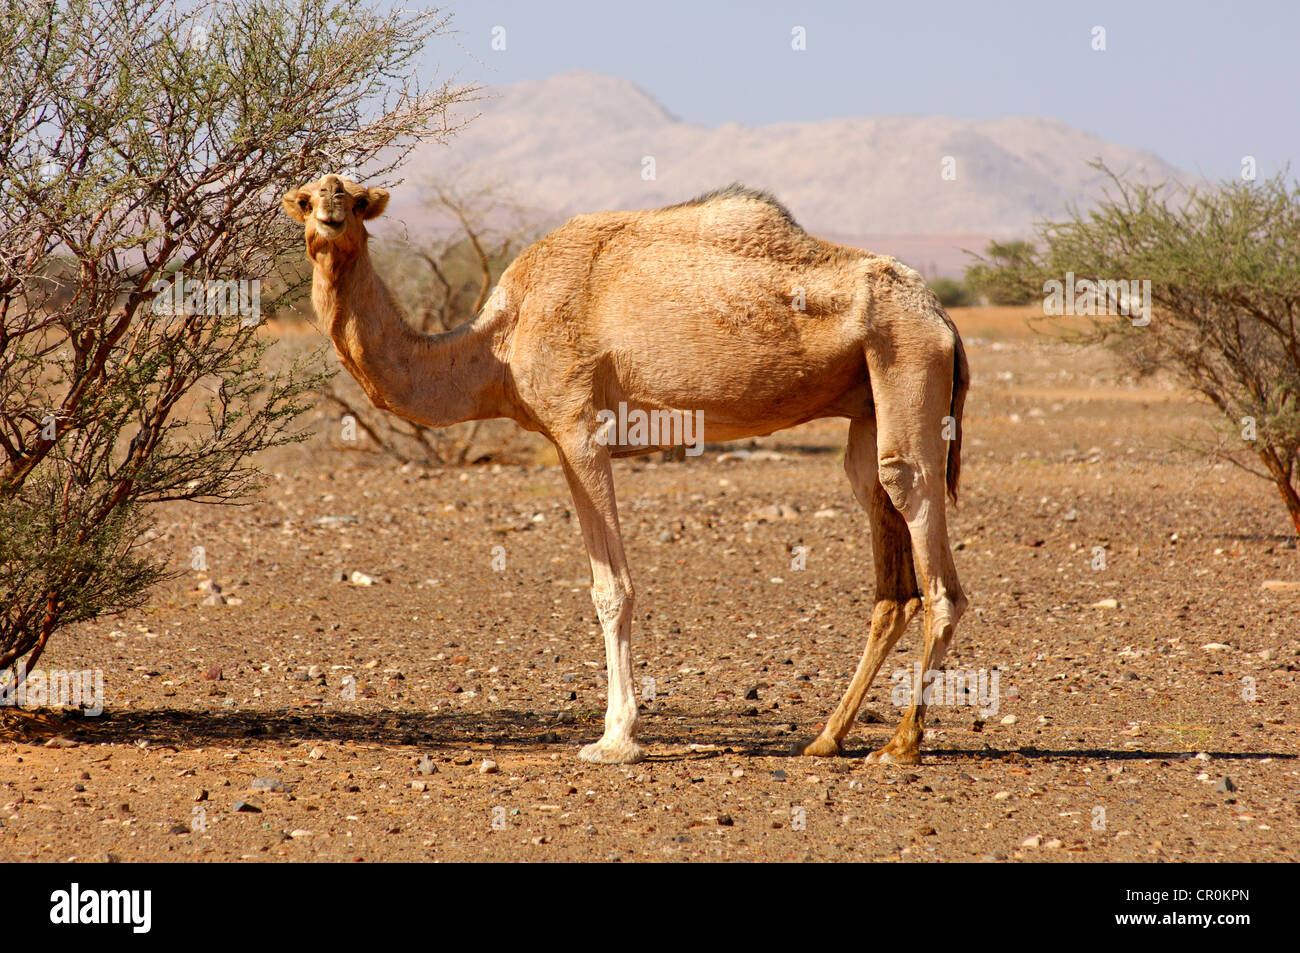 Semi Wild Dromedary Camelus Dromedarius Its Natural Habitat Cr Alamy